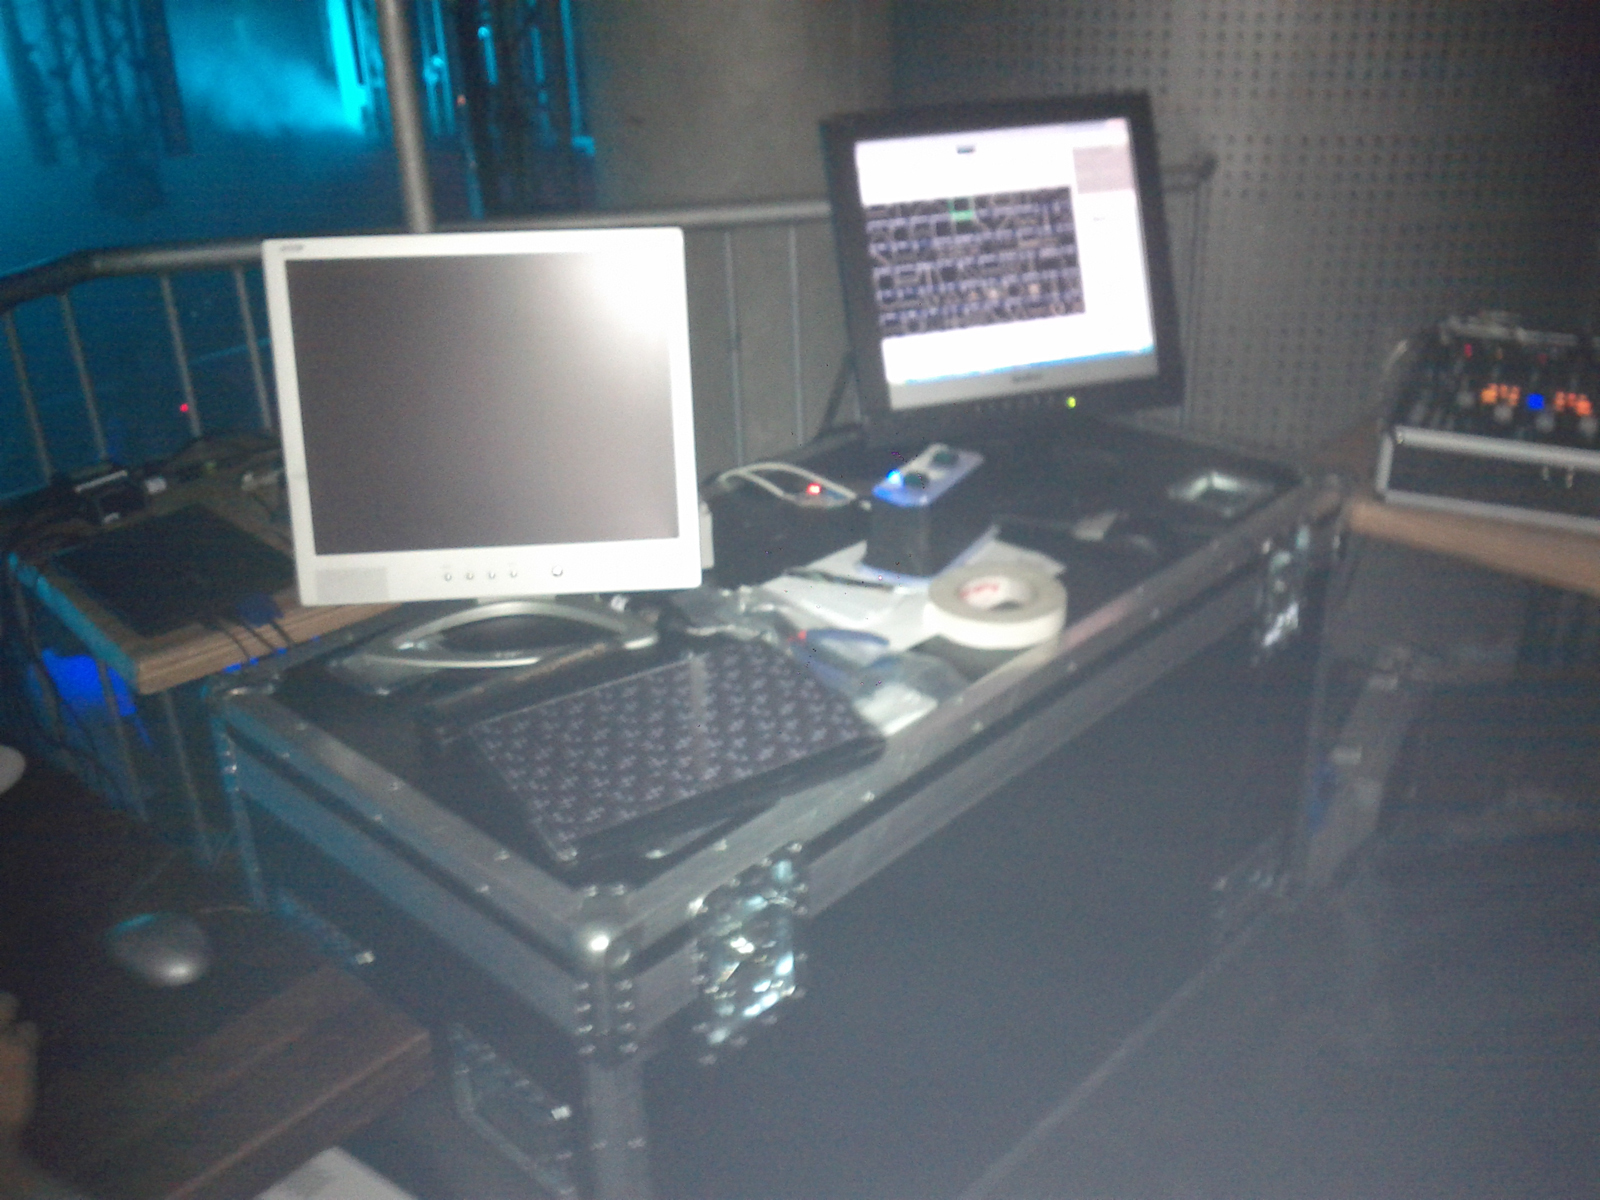 A picture from the laser control desk @ first location